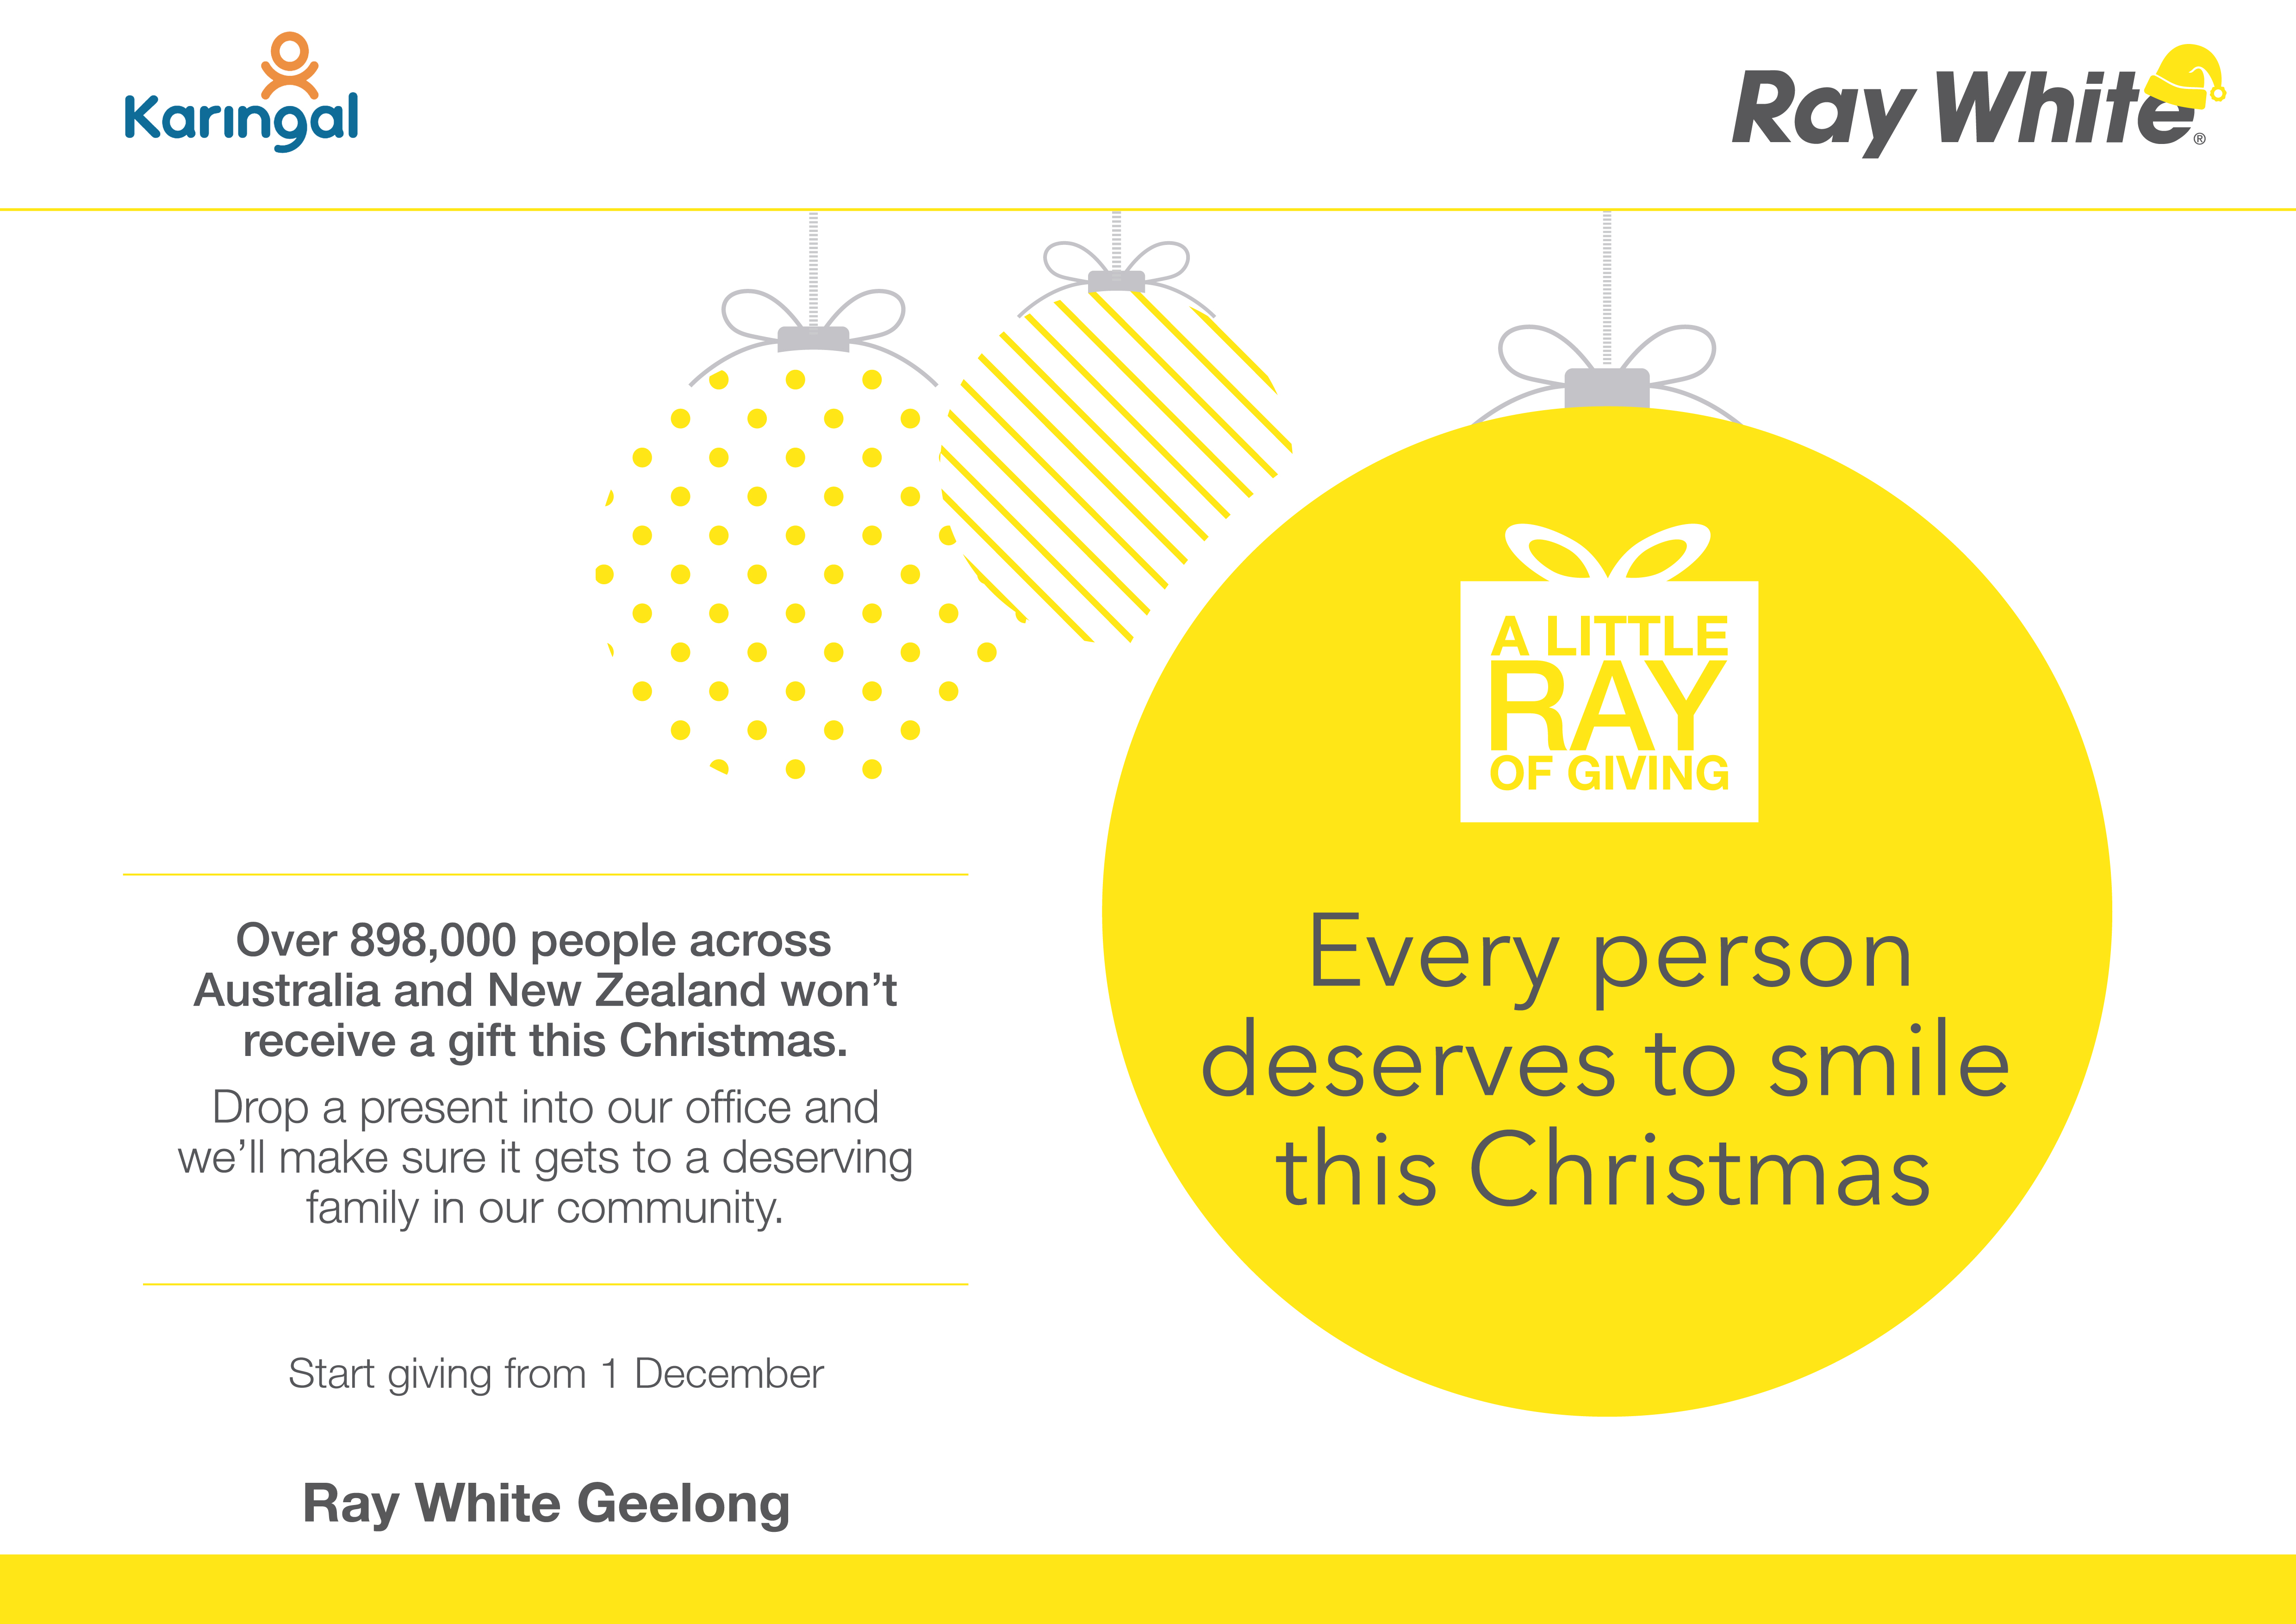 Window card - landscape - A little Ray of giving 2015 - Ray White AUS